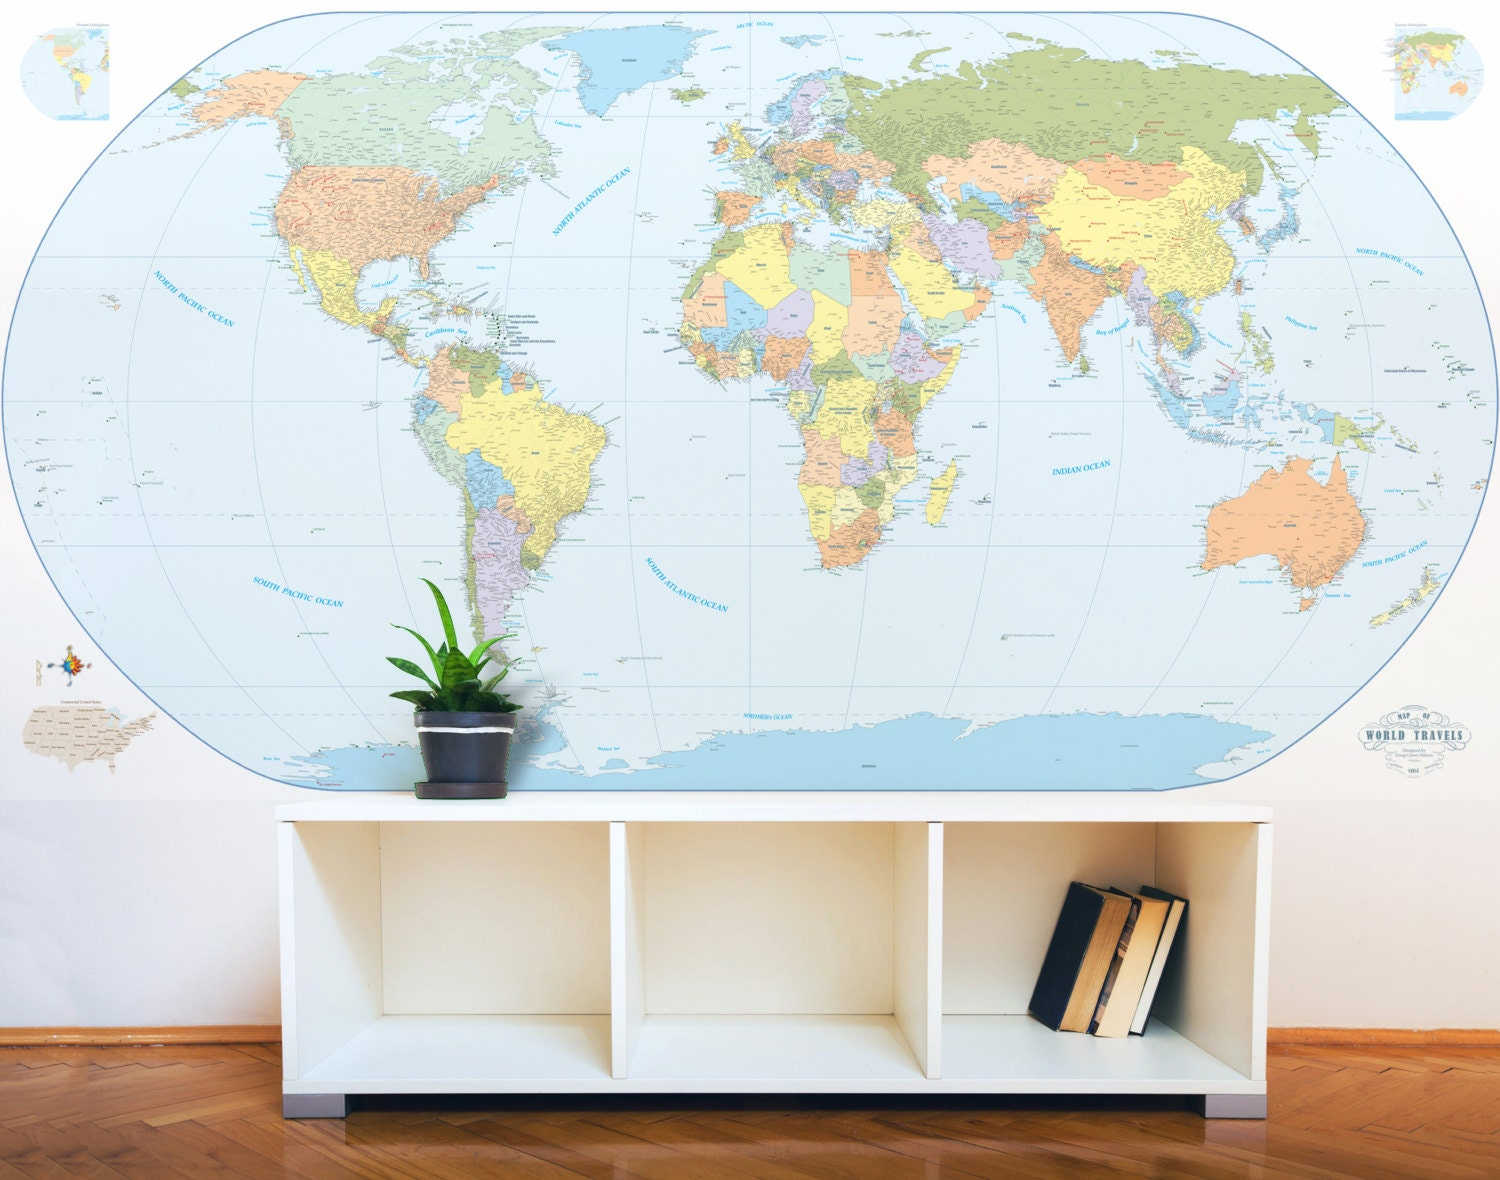 Giant world map mural stylish and educational world map wall for Educational mural